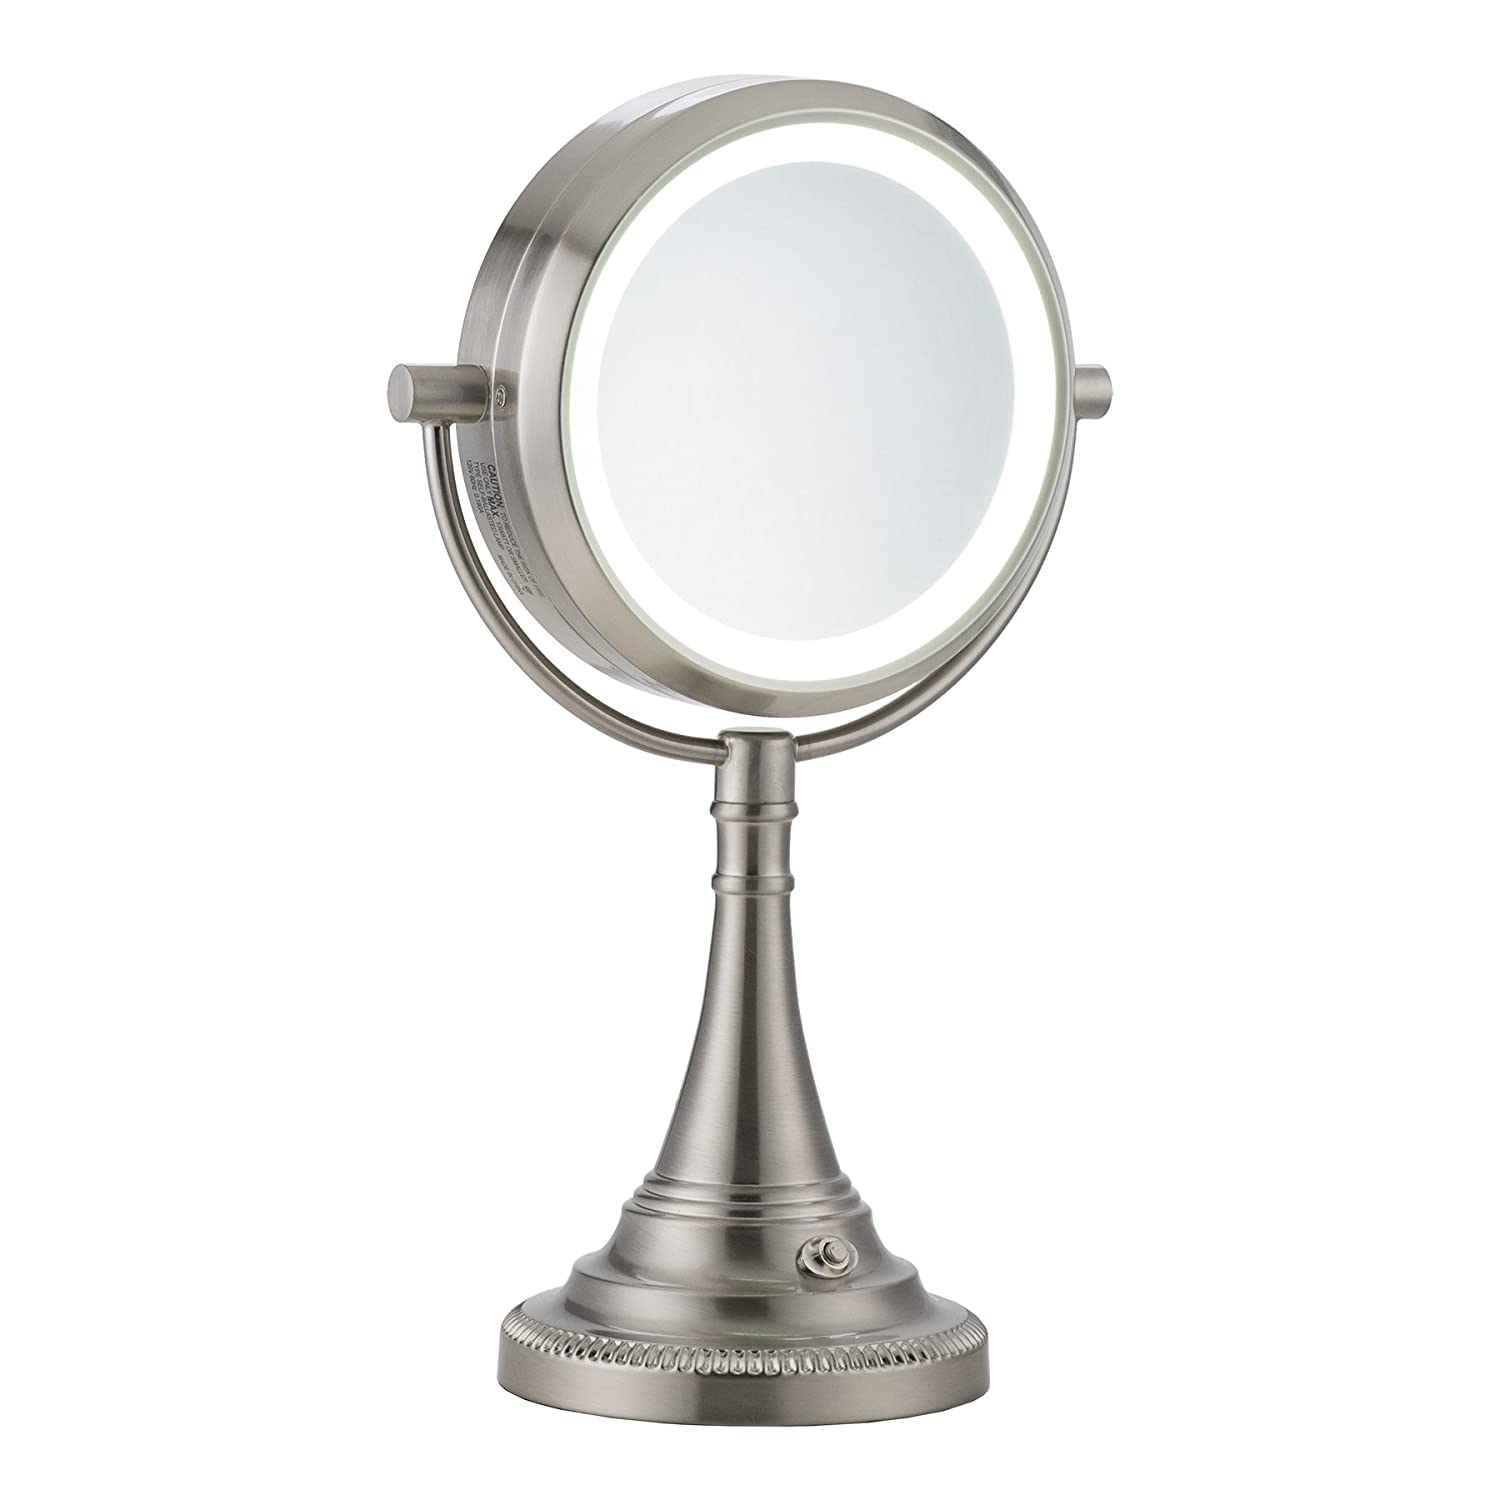 CO-Z 10x Magnifying Makeup Mirror, Elegant Vanity Magnifying Mirror with Light, Modern Dual Sided Brushed Nickel Tabletop Face Lighted Mirror with 10x Magnification for Women s Dresser